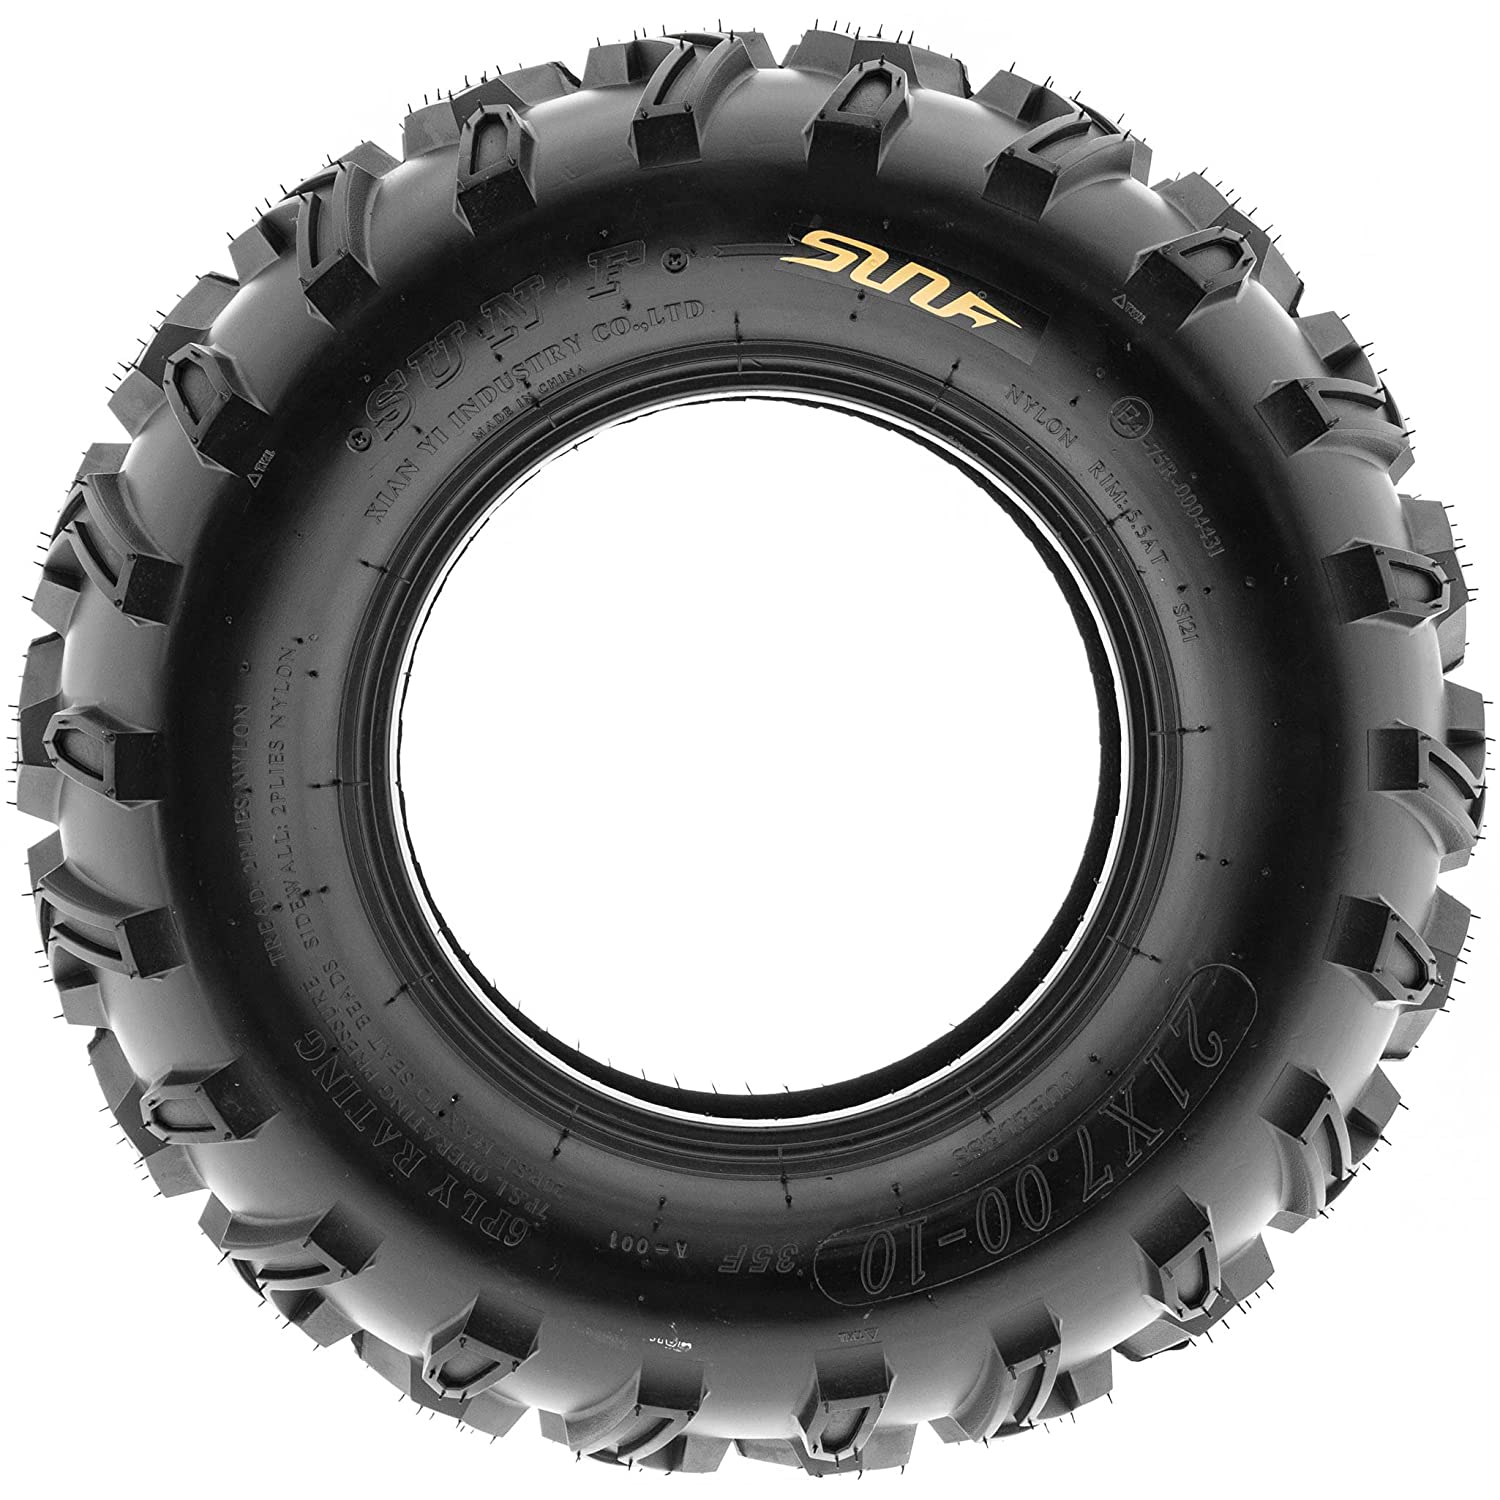 Amazon.com: SunF ATV UTV 21x7-10 All Terrain 6 PR Tubeless Replacement Trail Tire A001, [Single]: Automotive